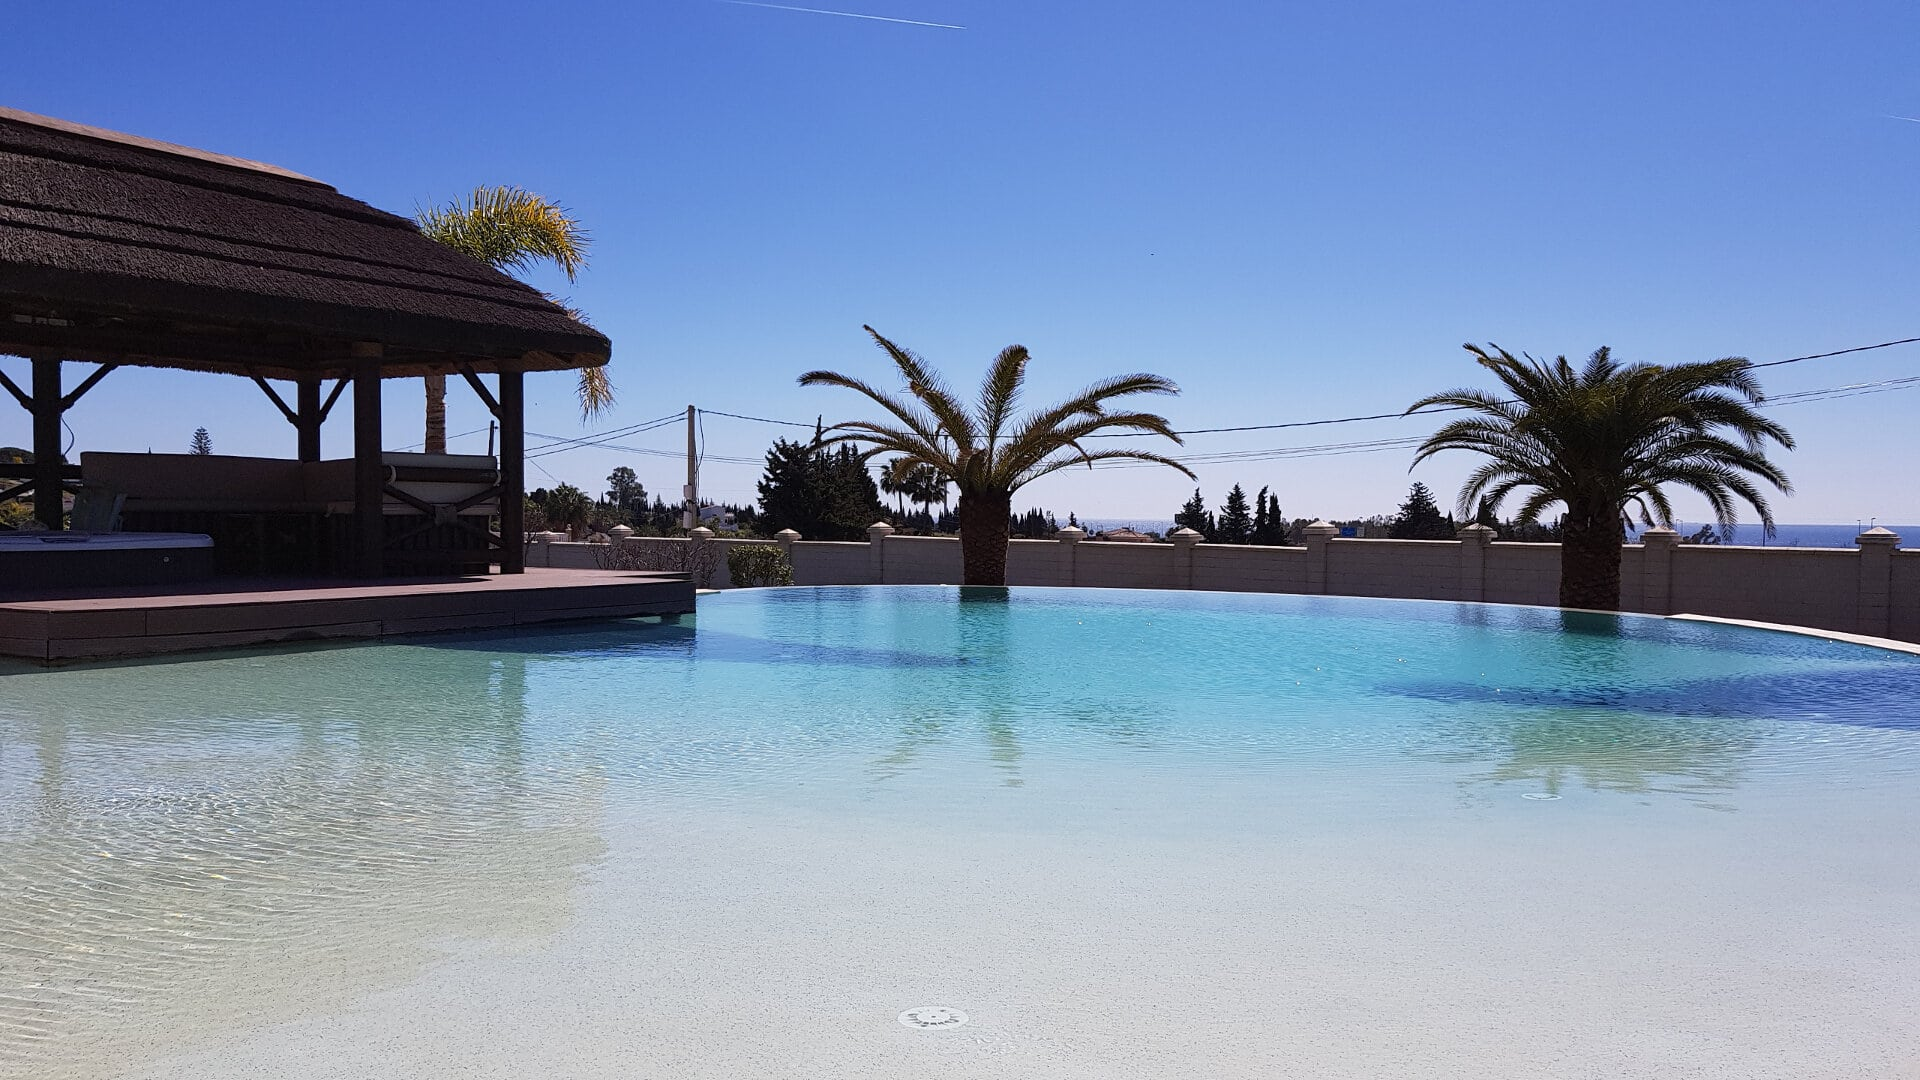 Sea view Estepona villa country side living at its best!